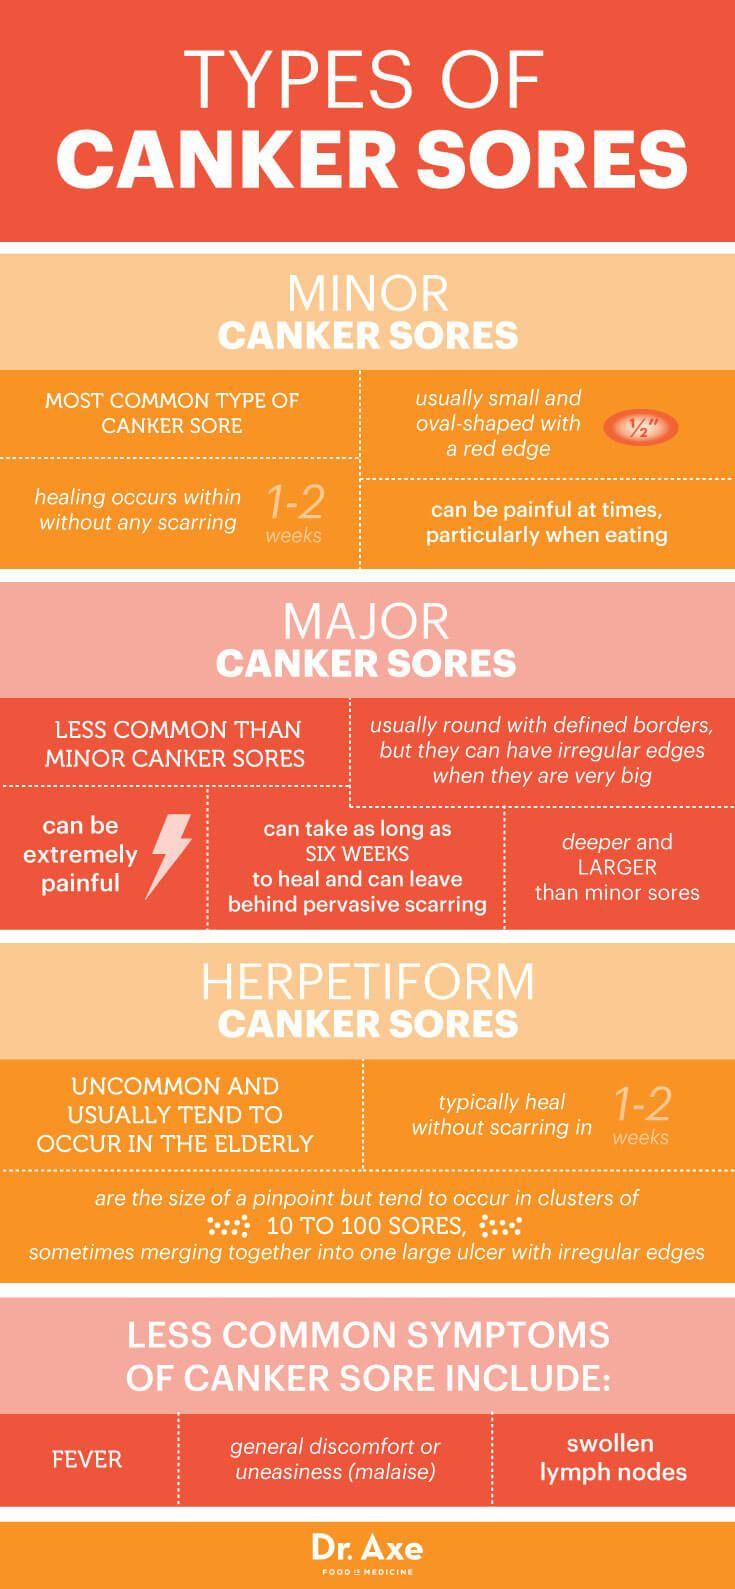 13 Ways to Heal the Obnoxious Canker Sore - Dr. Axe